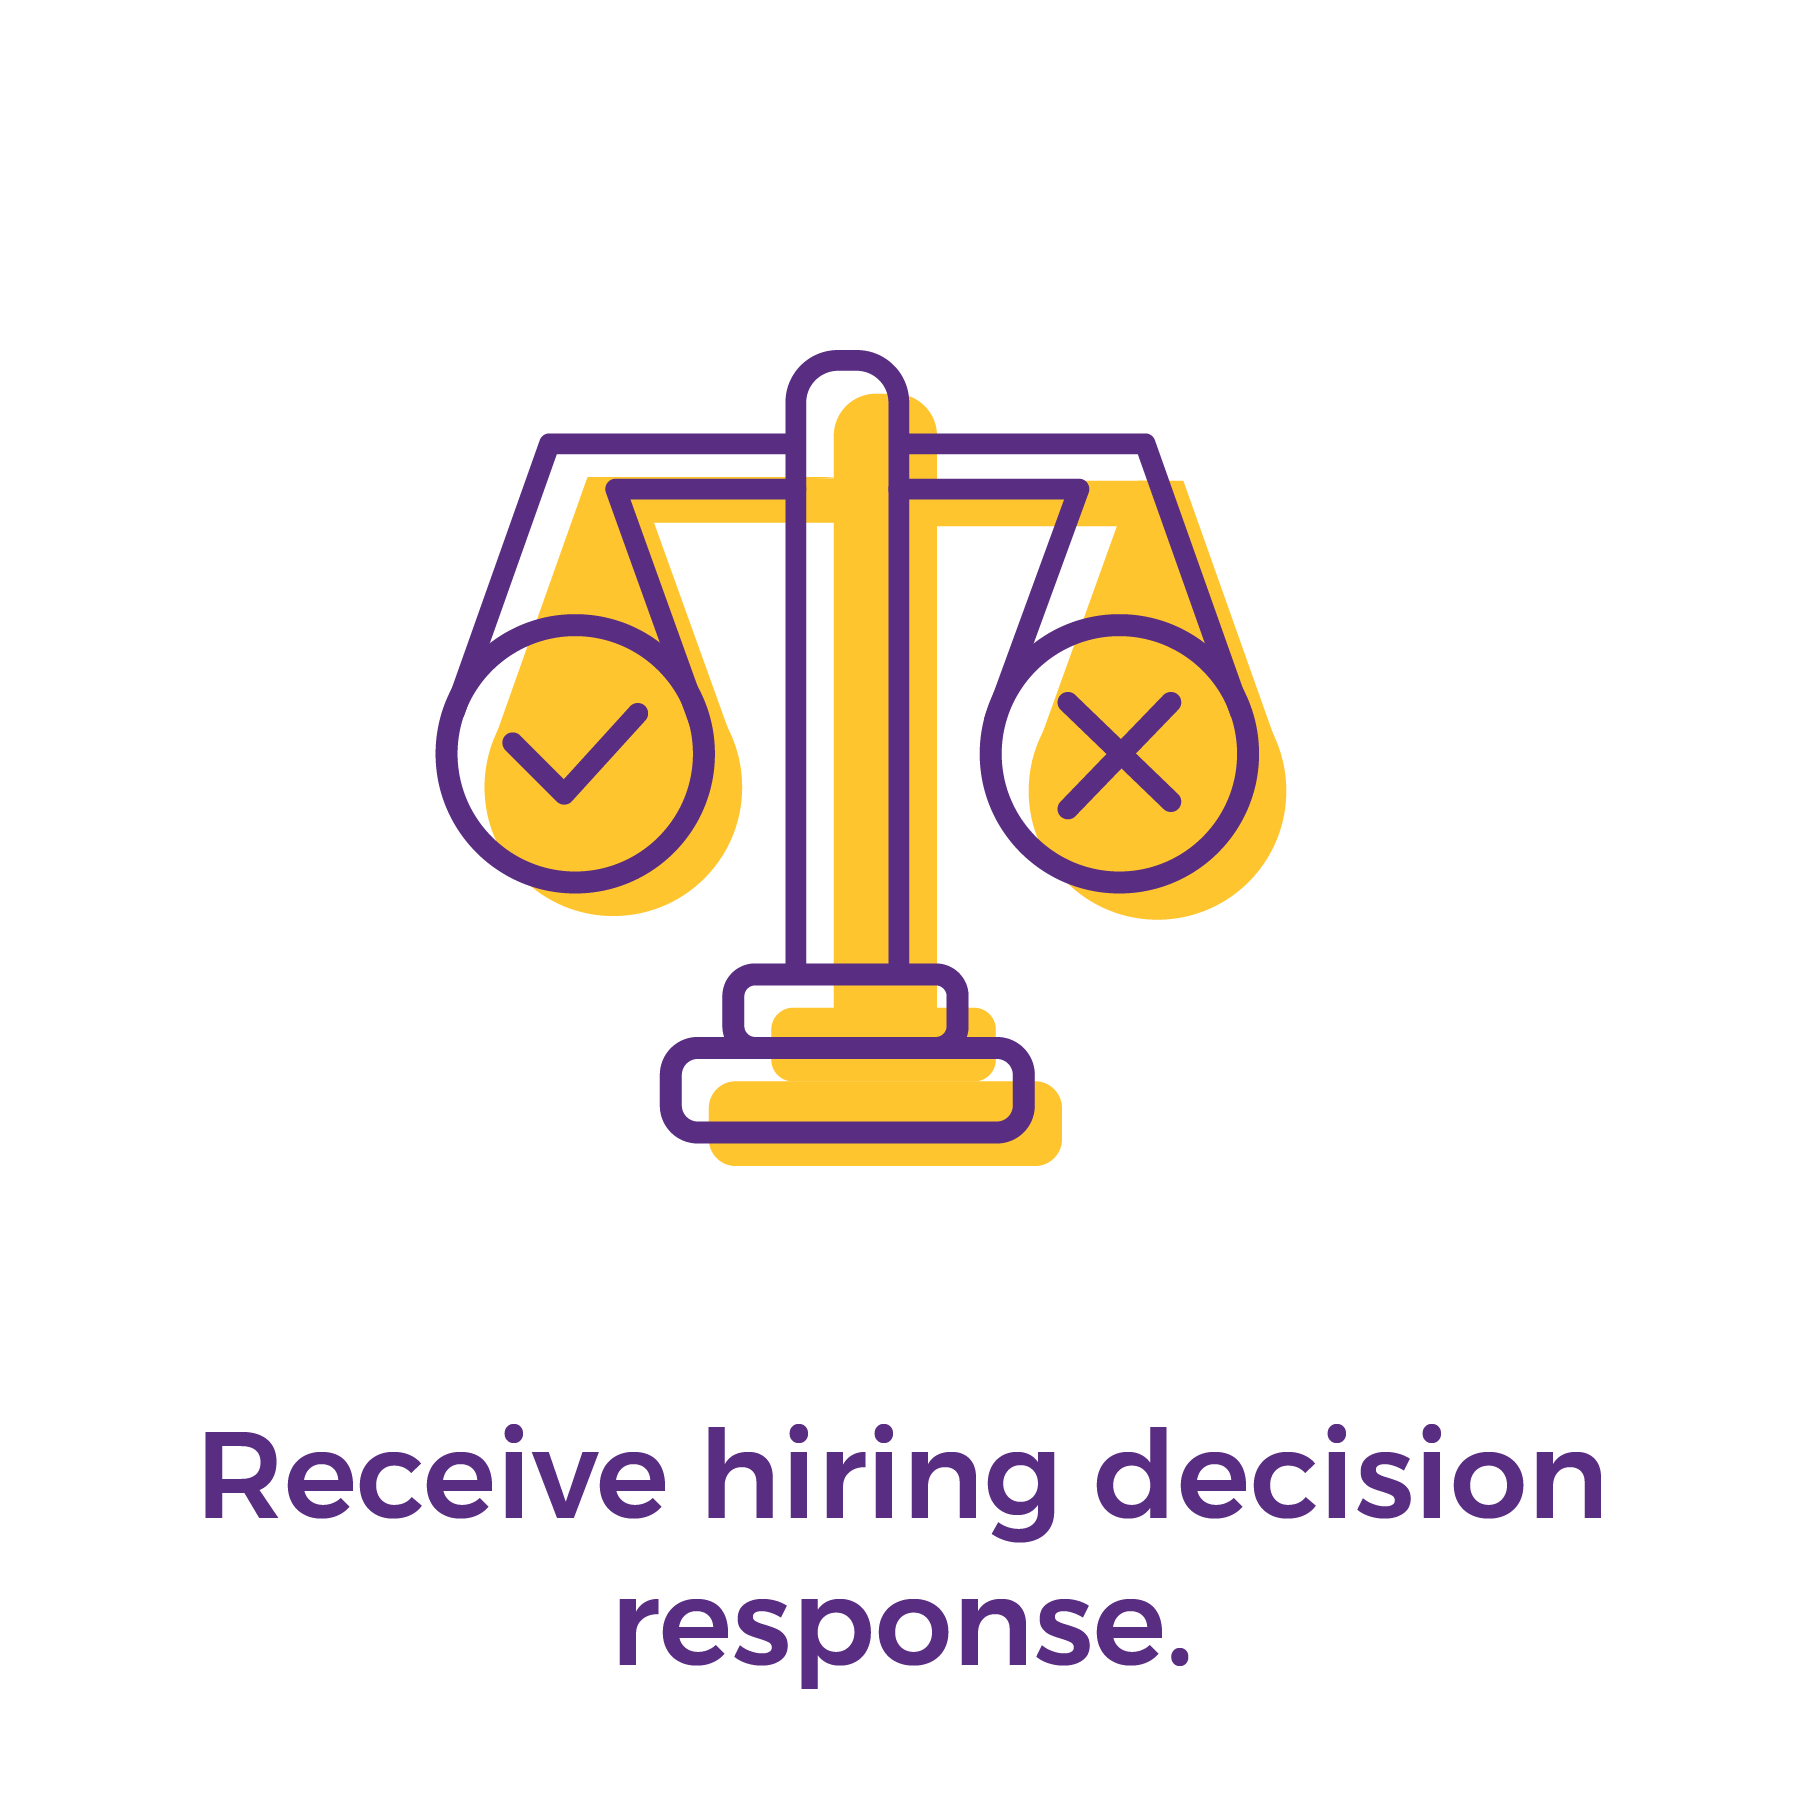 Step 5: Receive hiring decision response.